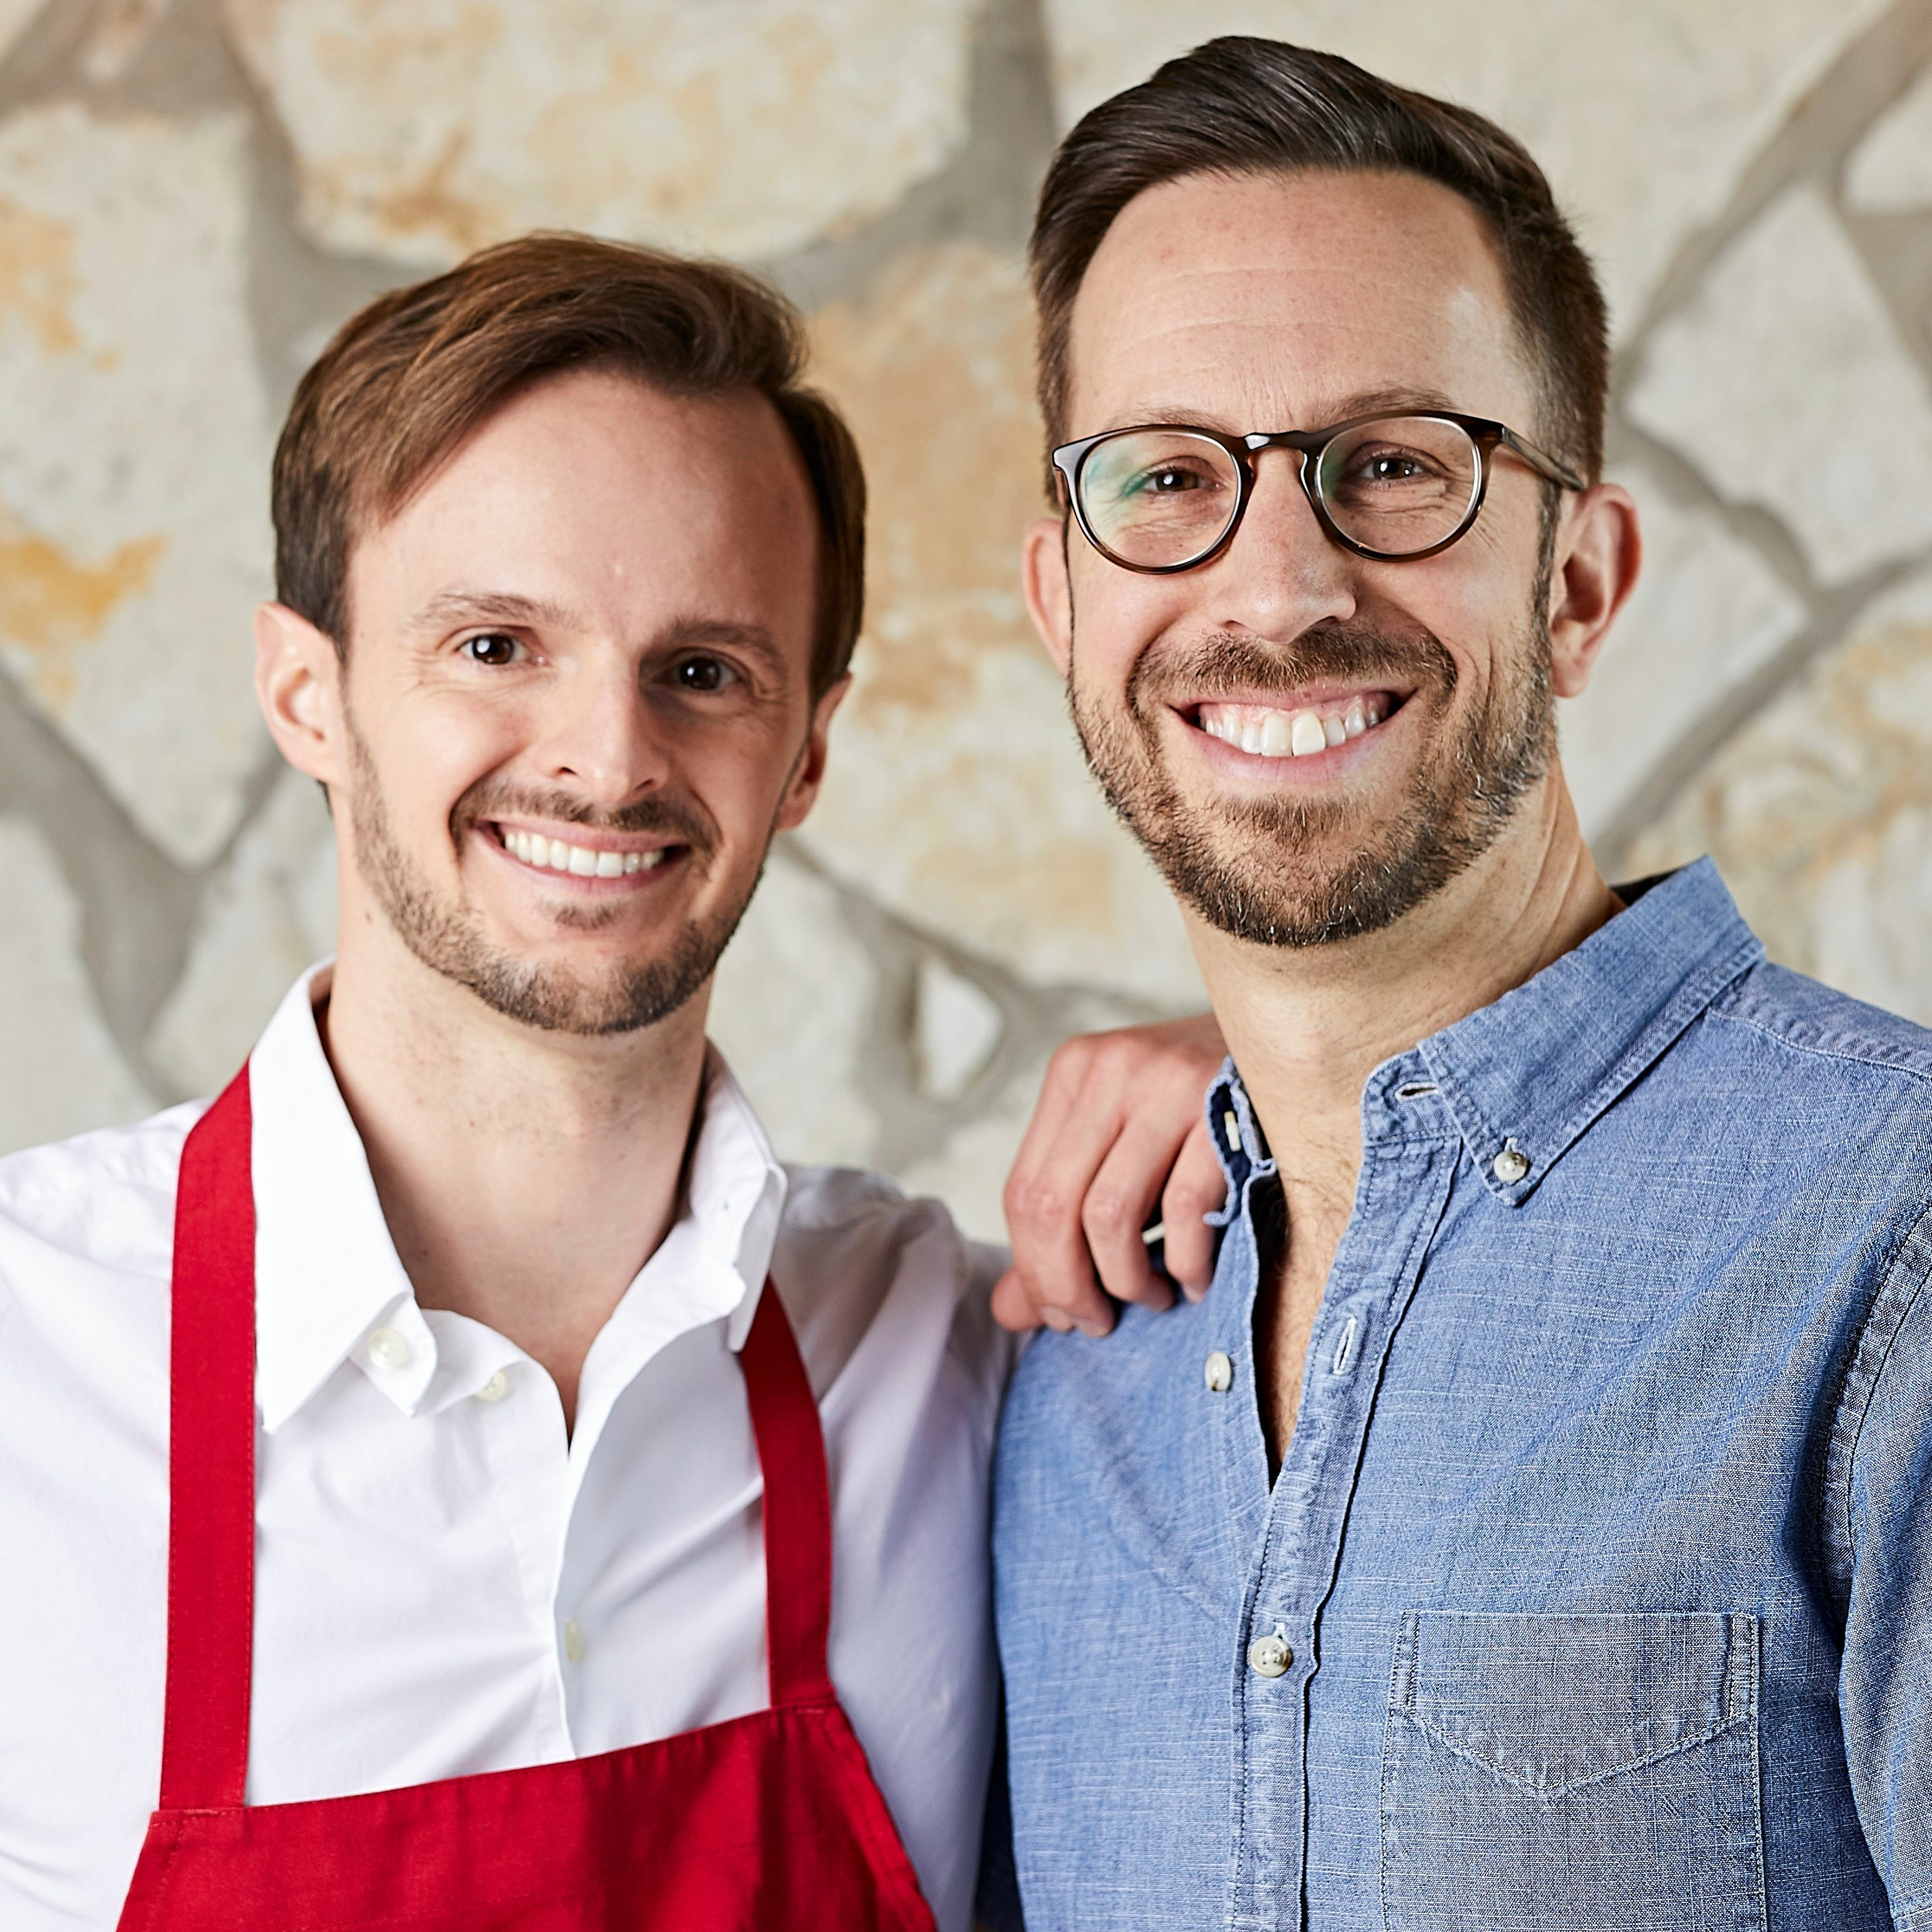 Home Sweet Home w/ Chad Palmatier and Anthony Sobotik (Founders, Lick Honest Ice Cream, ATX)